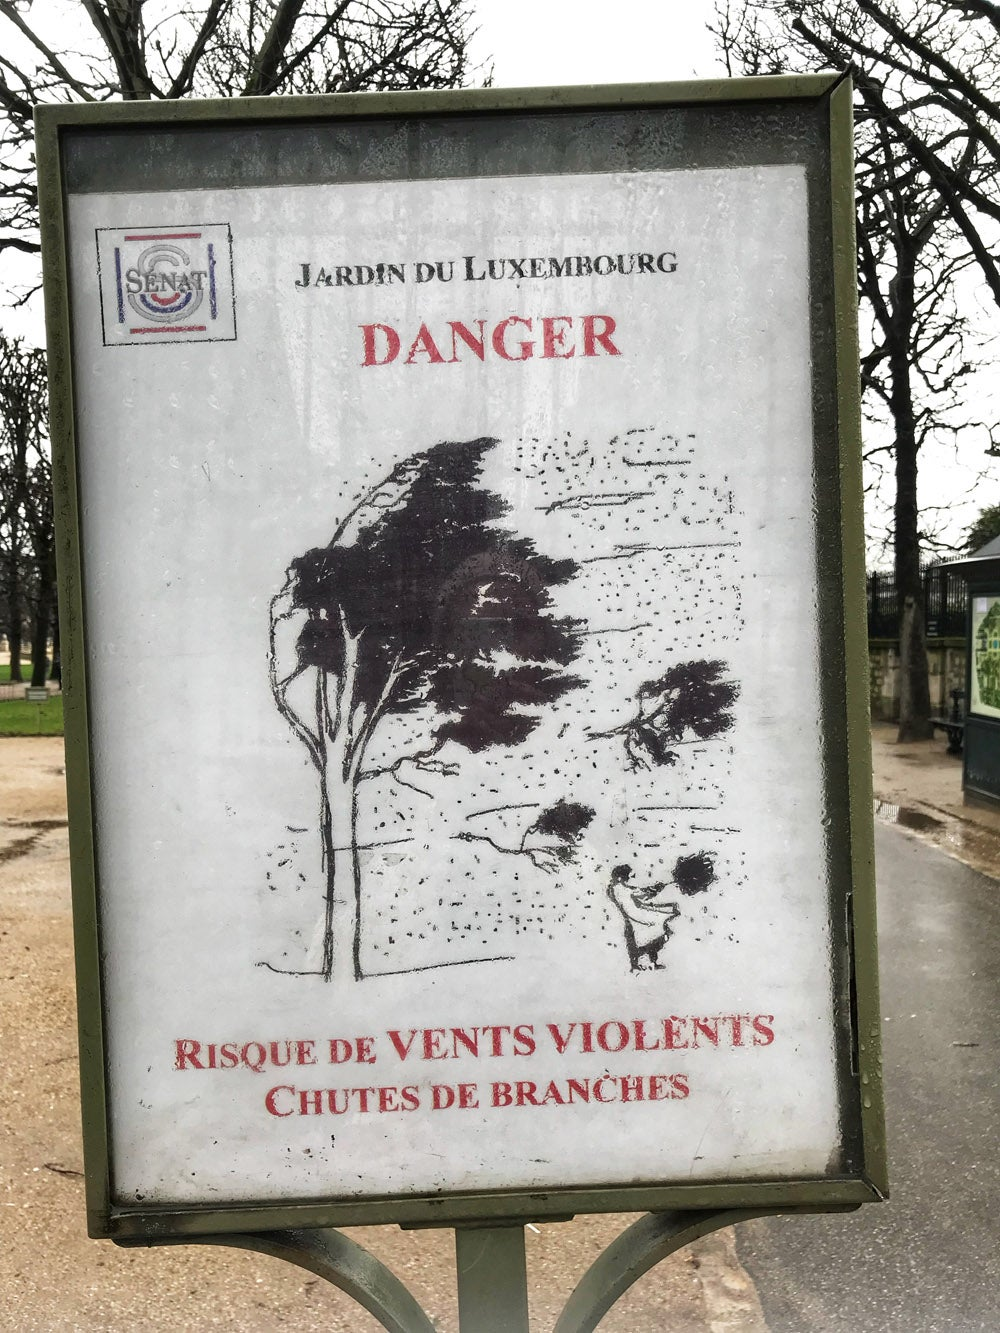 A sign warning about high winds in the Jardin du Luxembourg